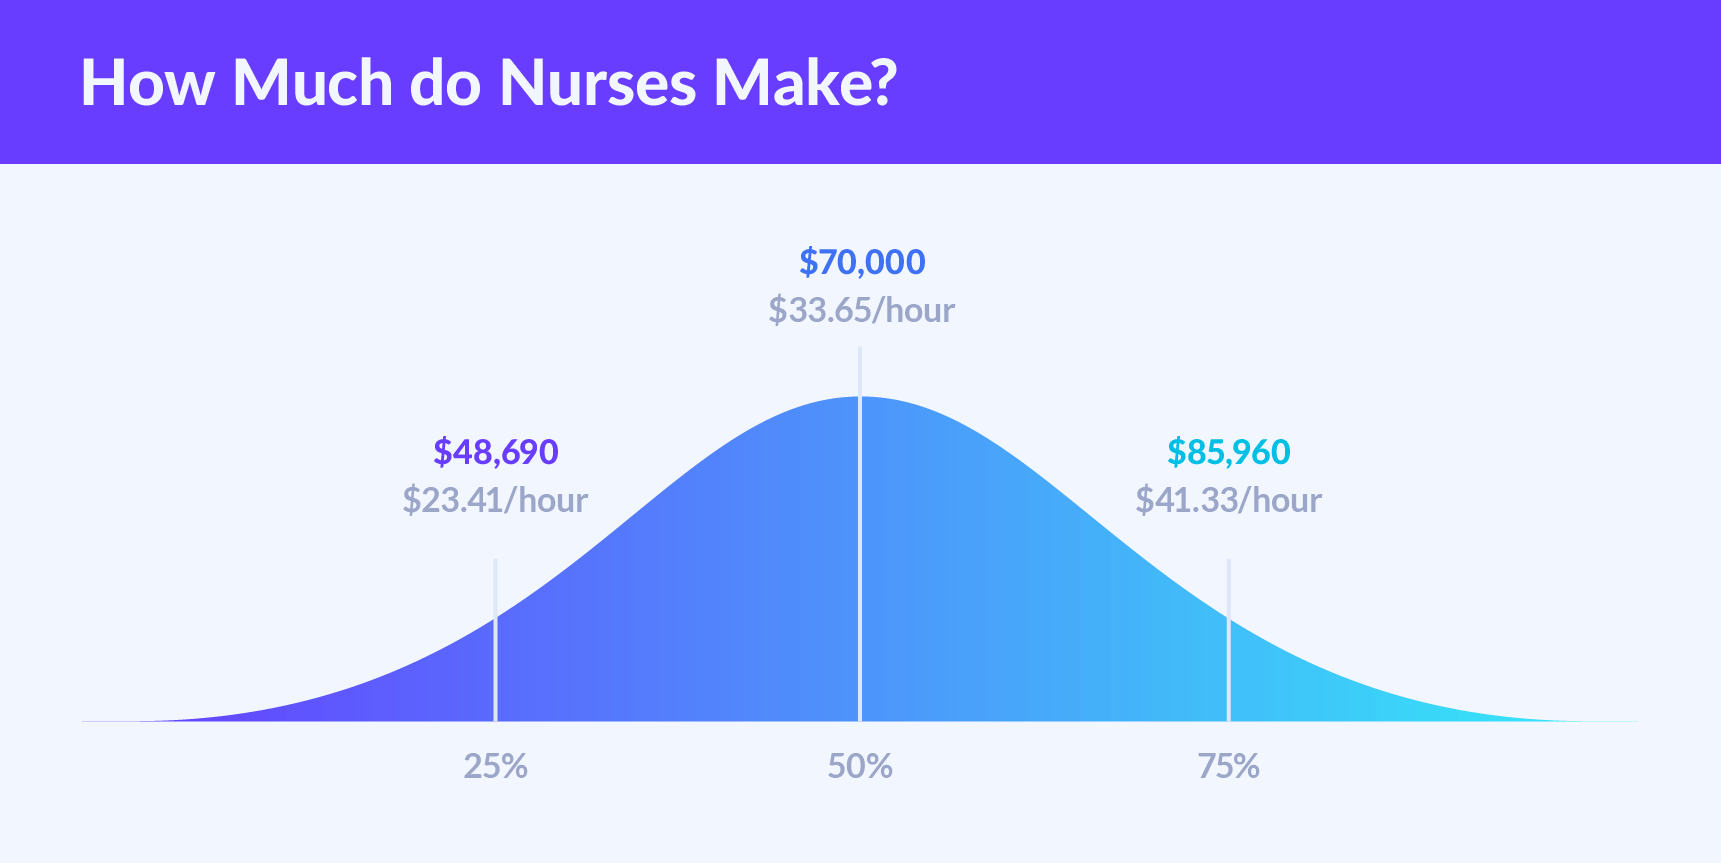 How Much Do Nurses Make?